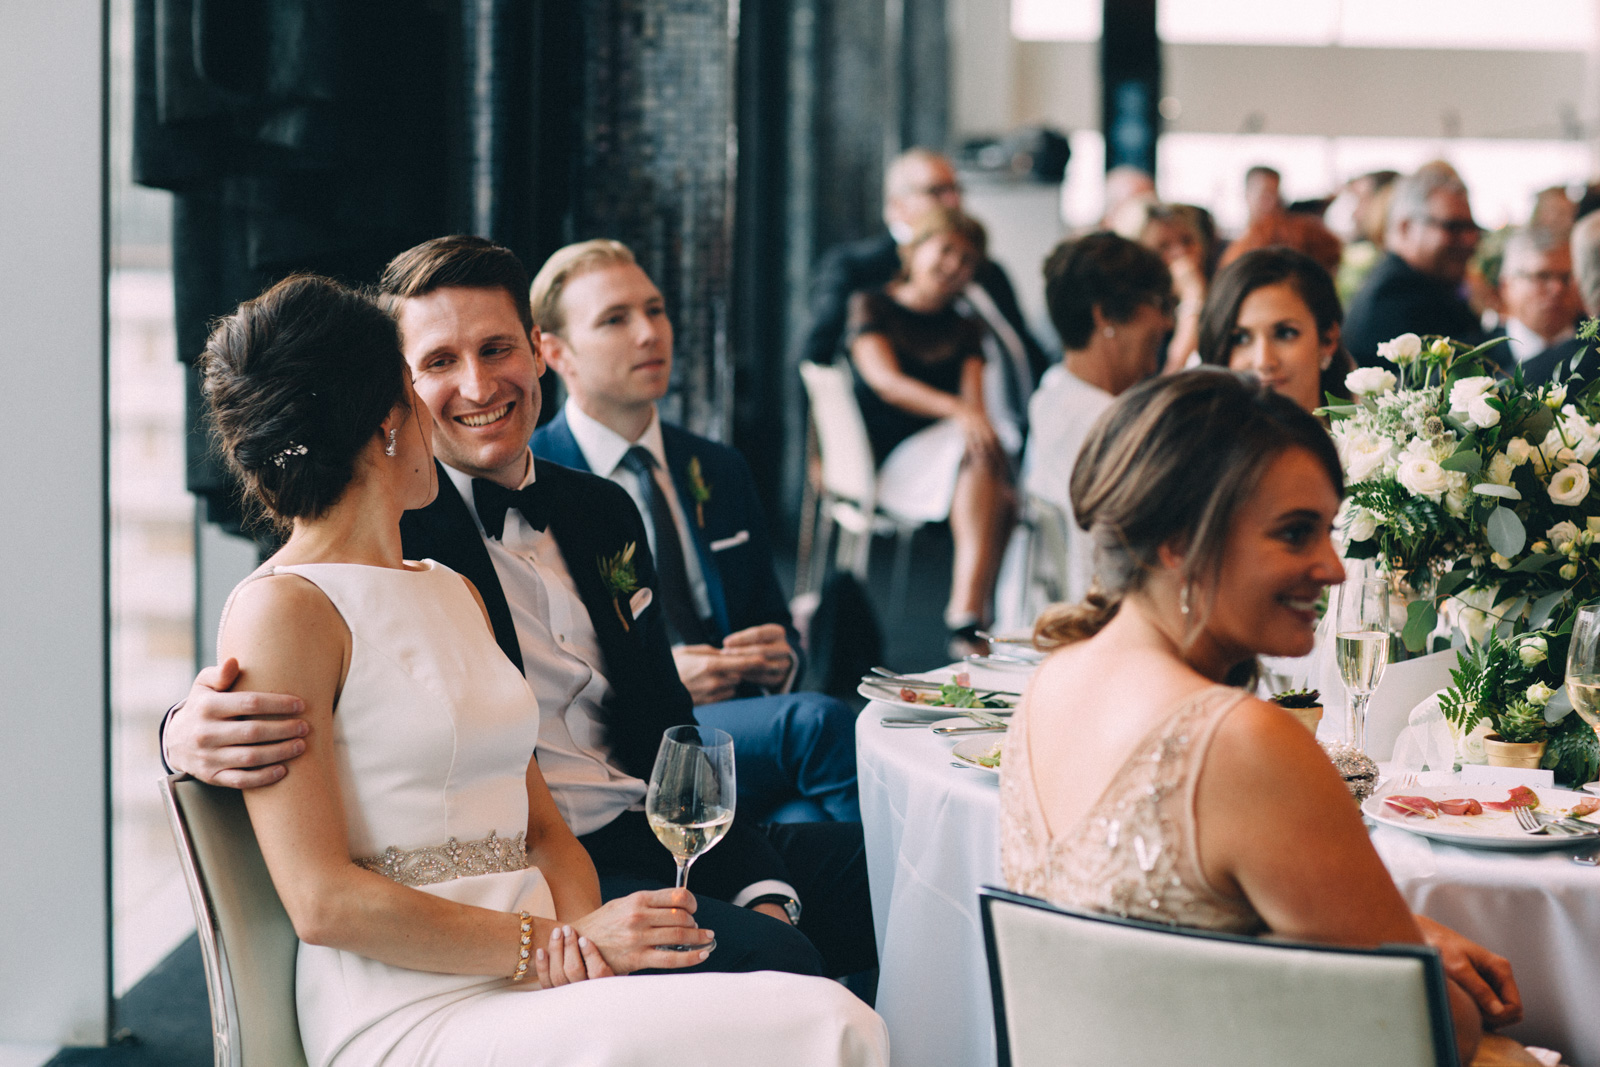 Malaparte-wedding-photography-Toronto-by-Sam-Wong-of-Artanis-Collective_68.jpg